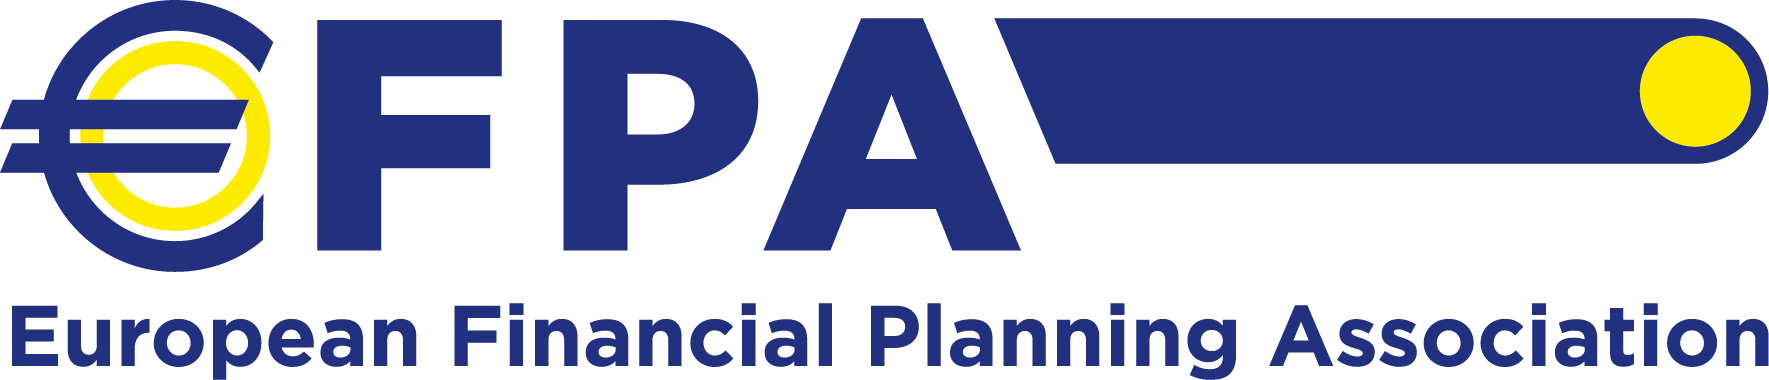 EFPA financial planning